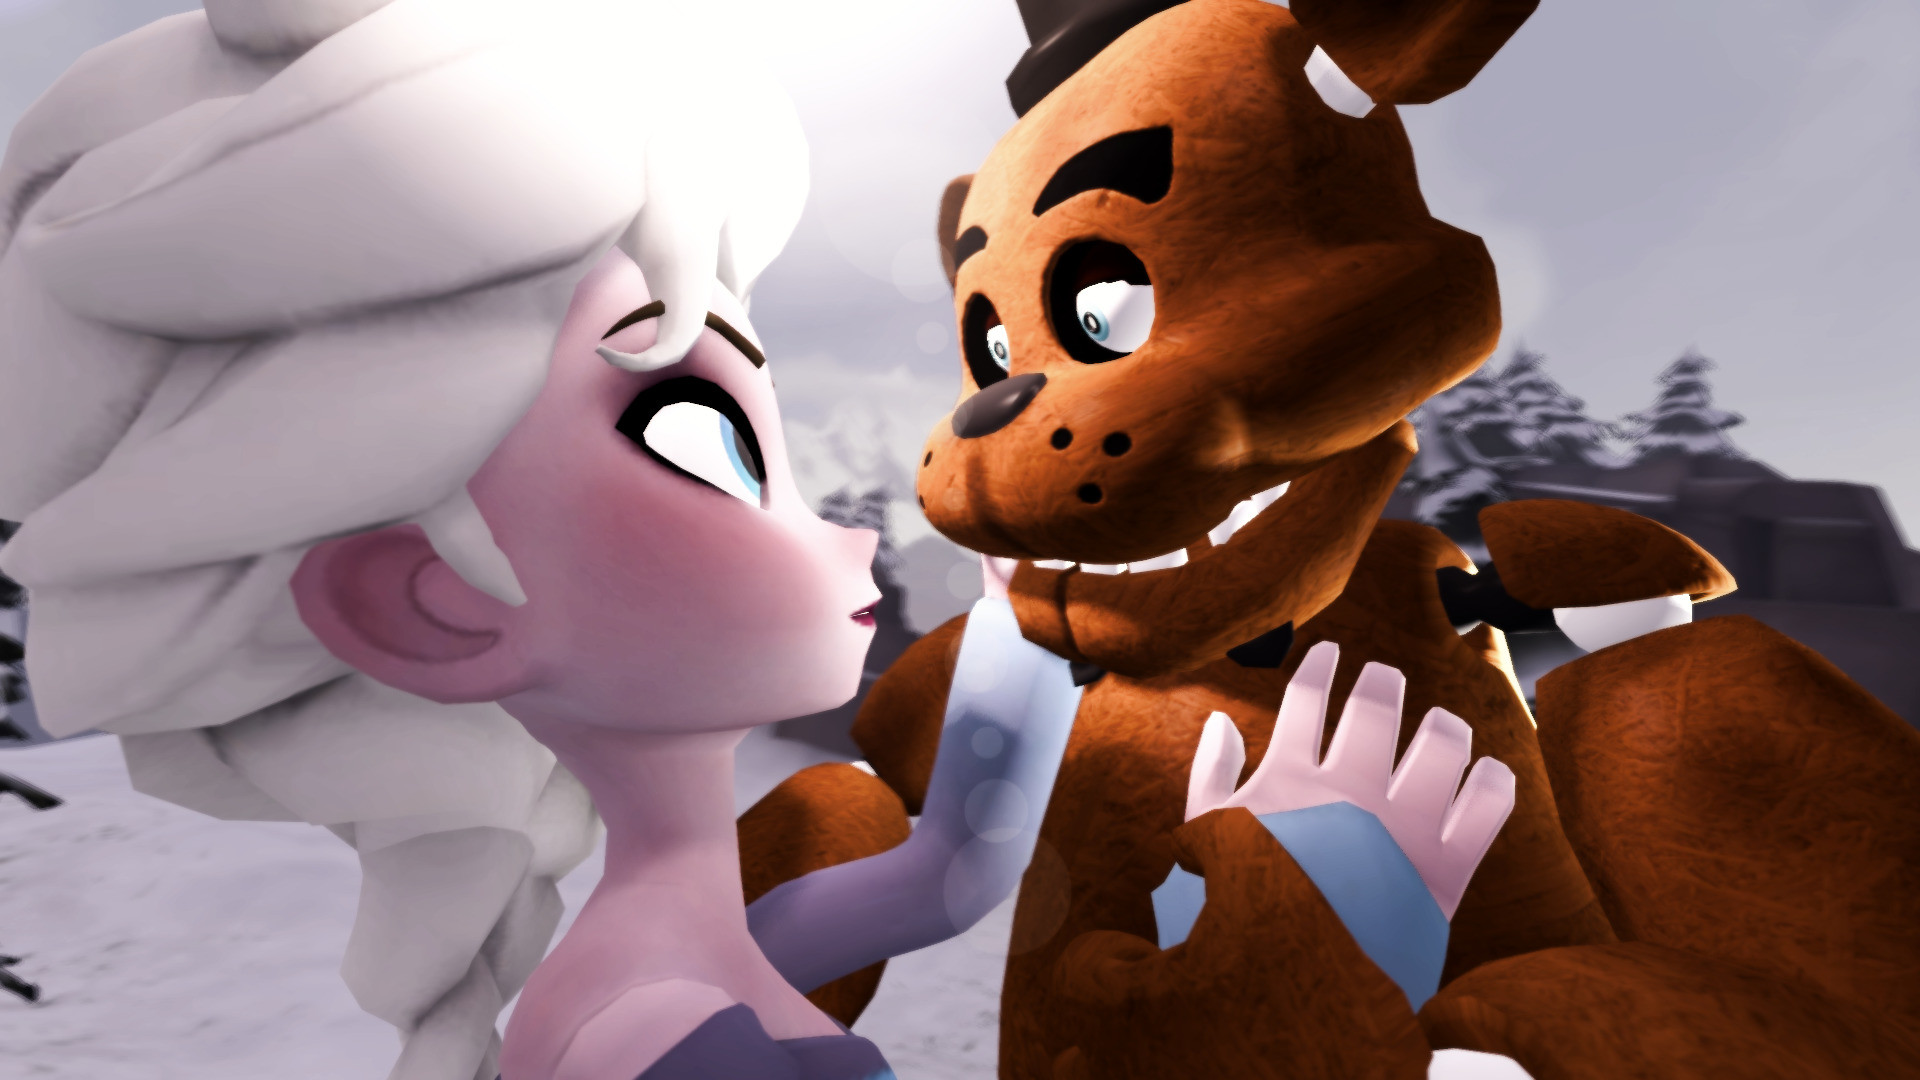 Five Nights At Freddys, Freddy Fazbear, Crossover, Frozen (movie), Princess  Elsa Wallpapers HD / Desktop and Mobile Backgrounds